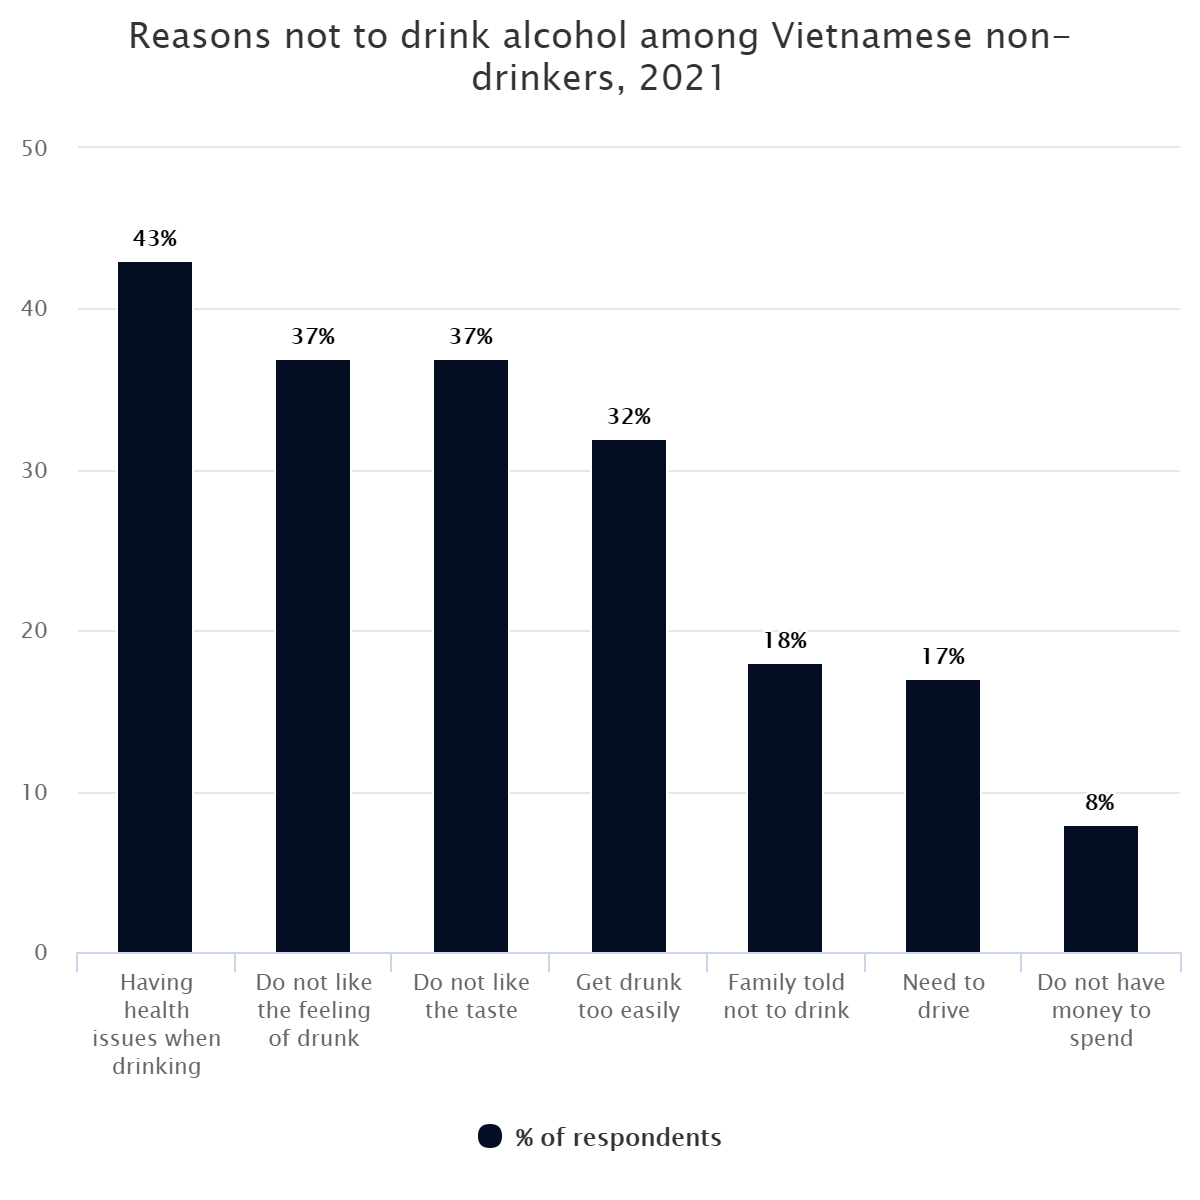 Reasons not to drink alcohol among Vietnamese non-drinkers, 2021